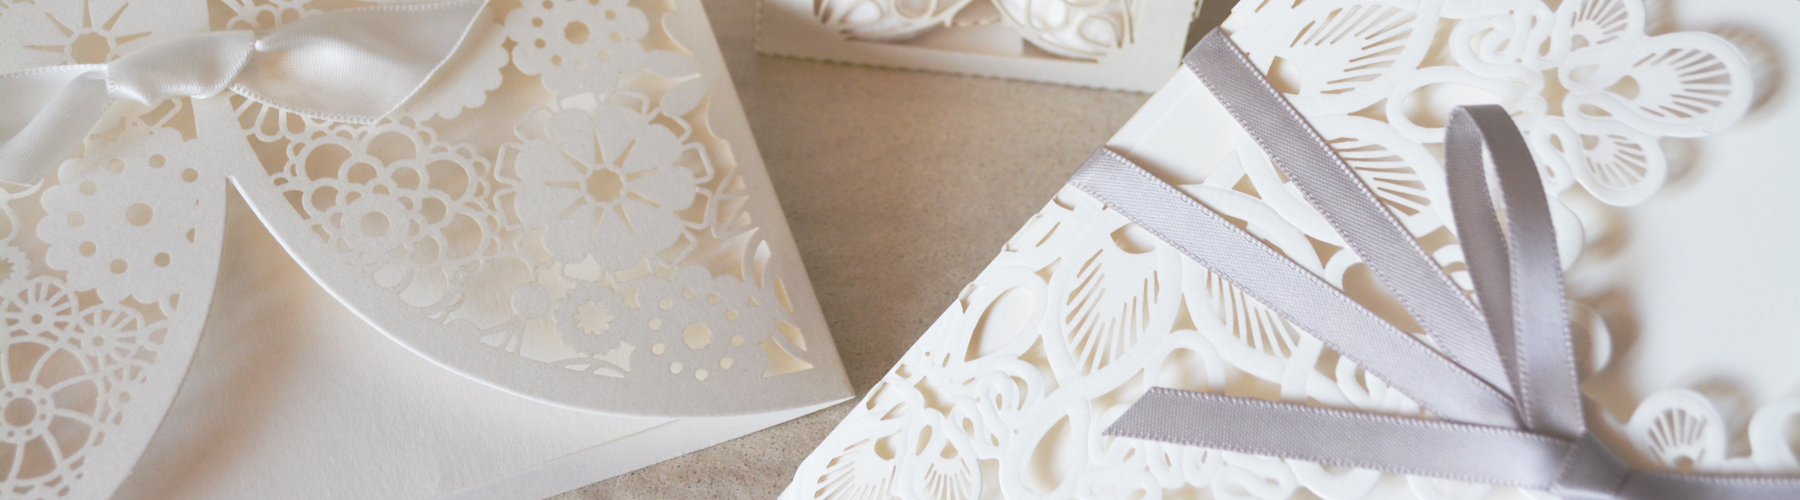 A guide to the most beautifully designed wedding invitations